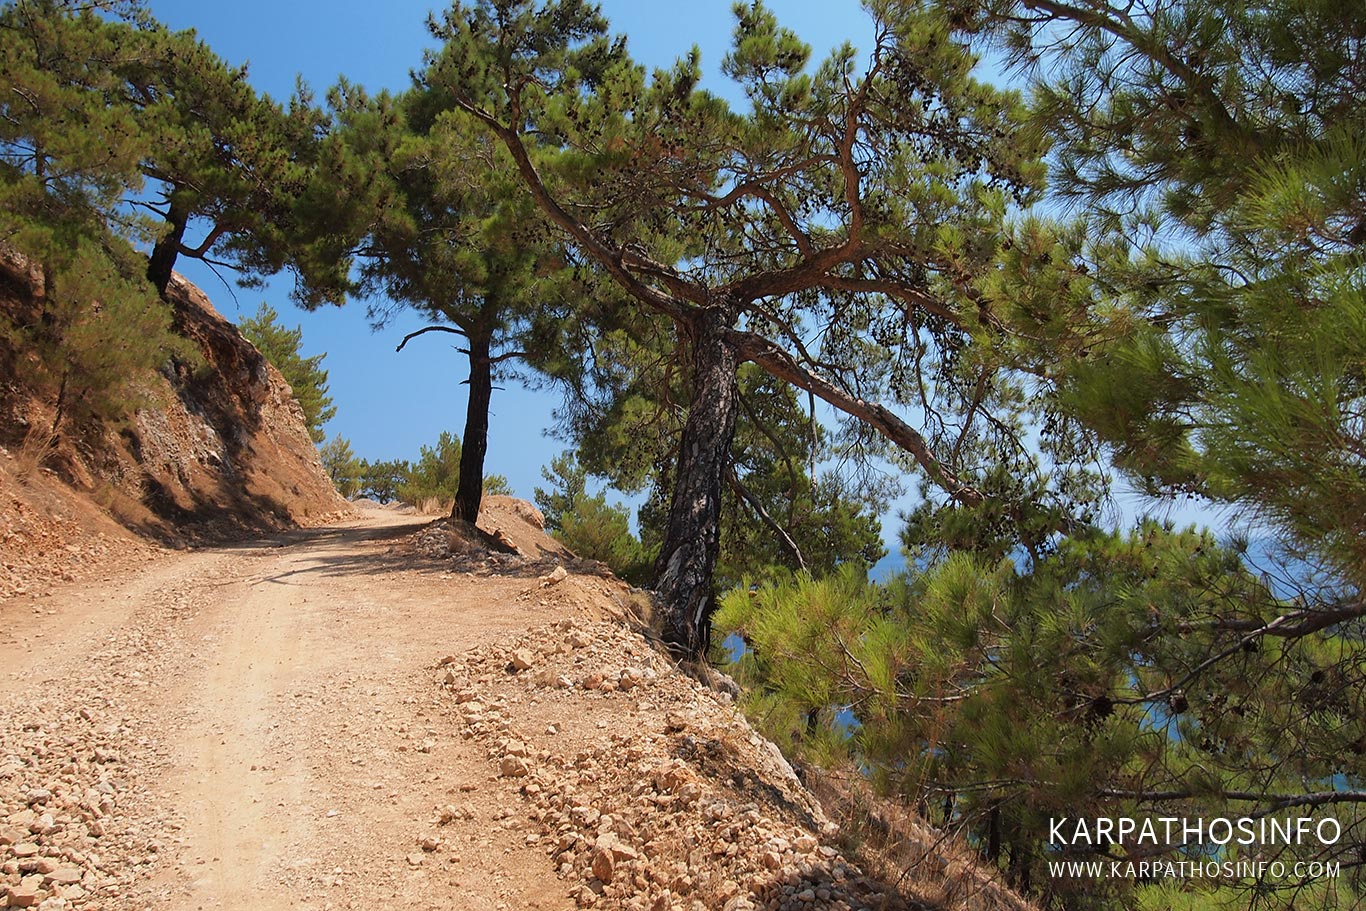 Off road in Karpathos